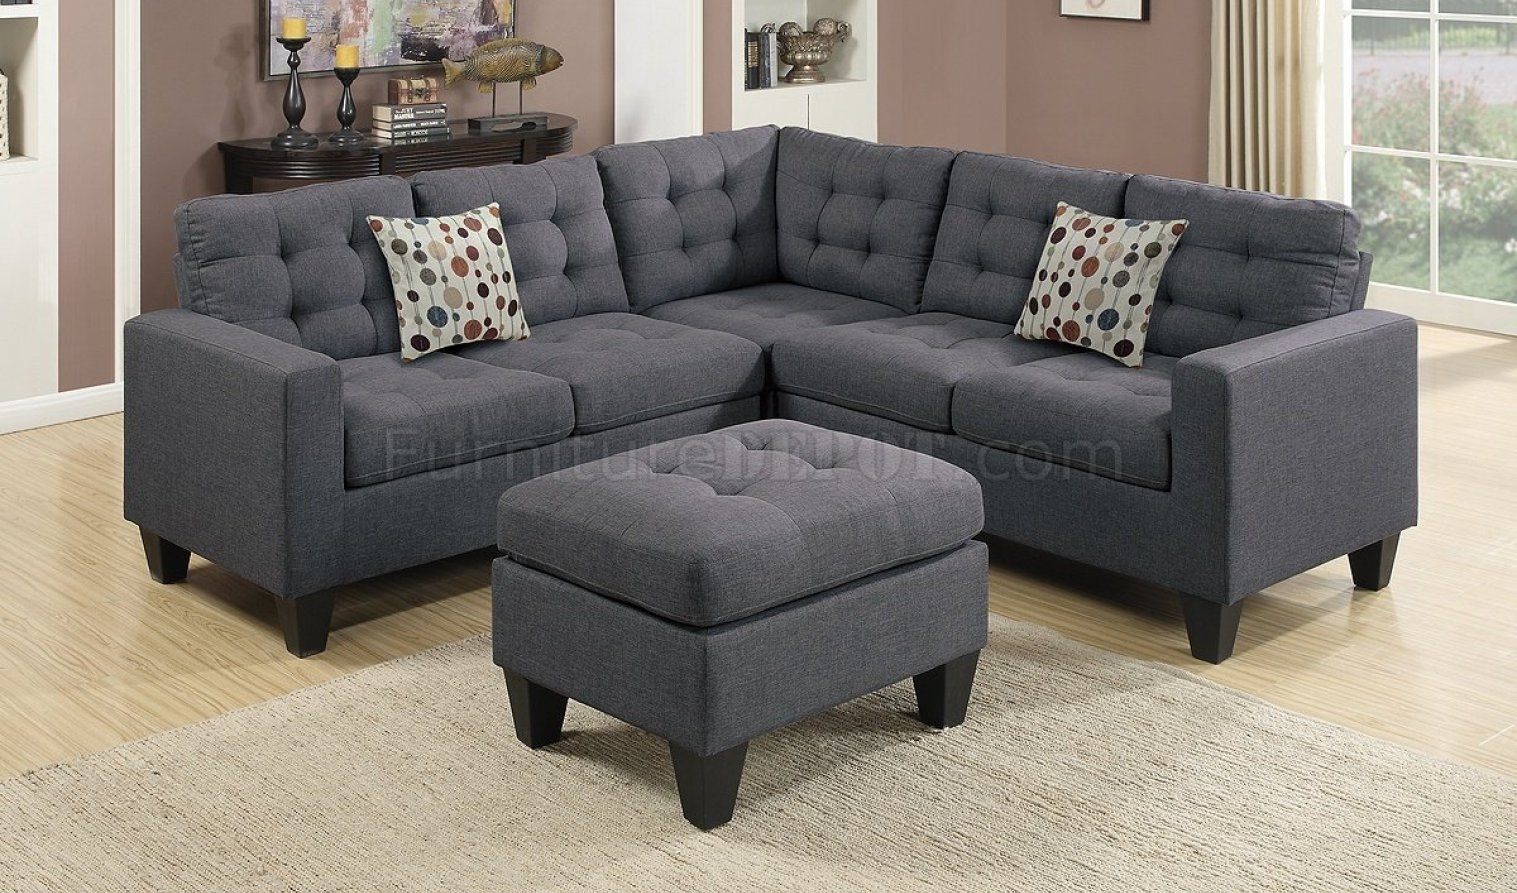 Cleaner : Navy Microfiber Sofa Exotic Reclining Sofas' Imposing With Regard To Little Rock Ar Sectional Sofas (View 4 of 10)